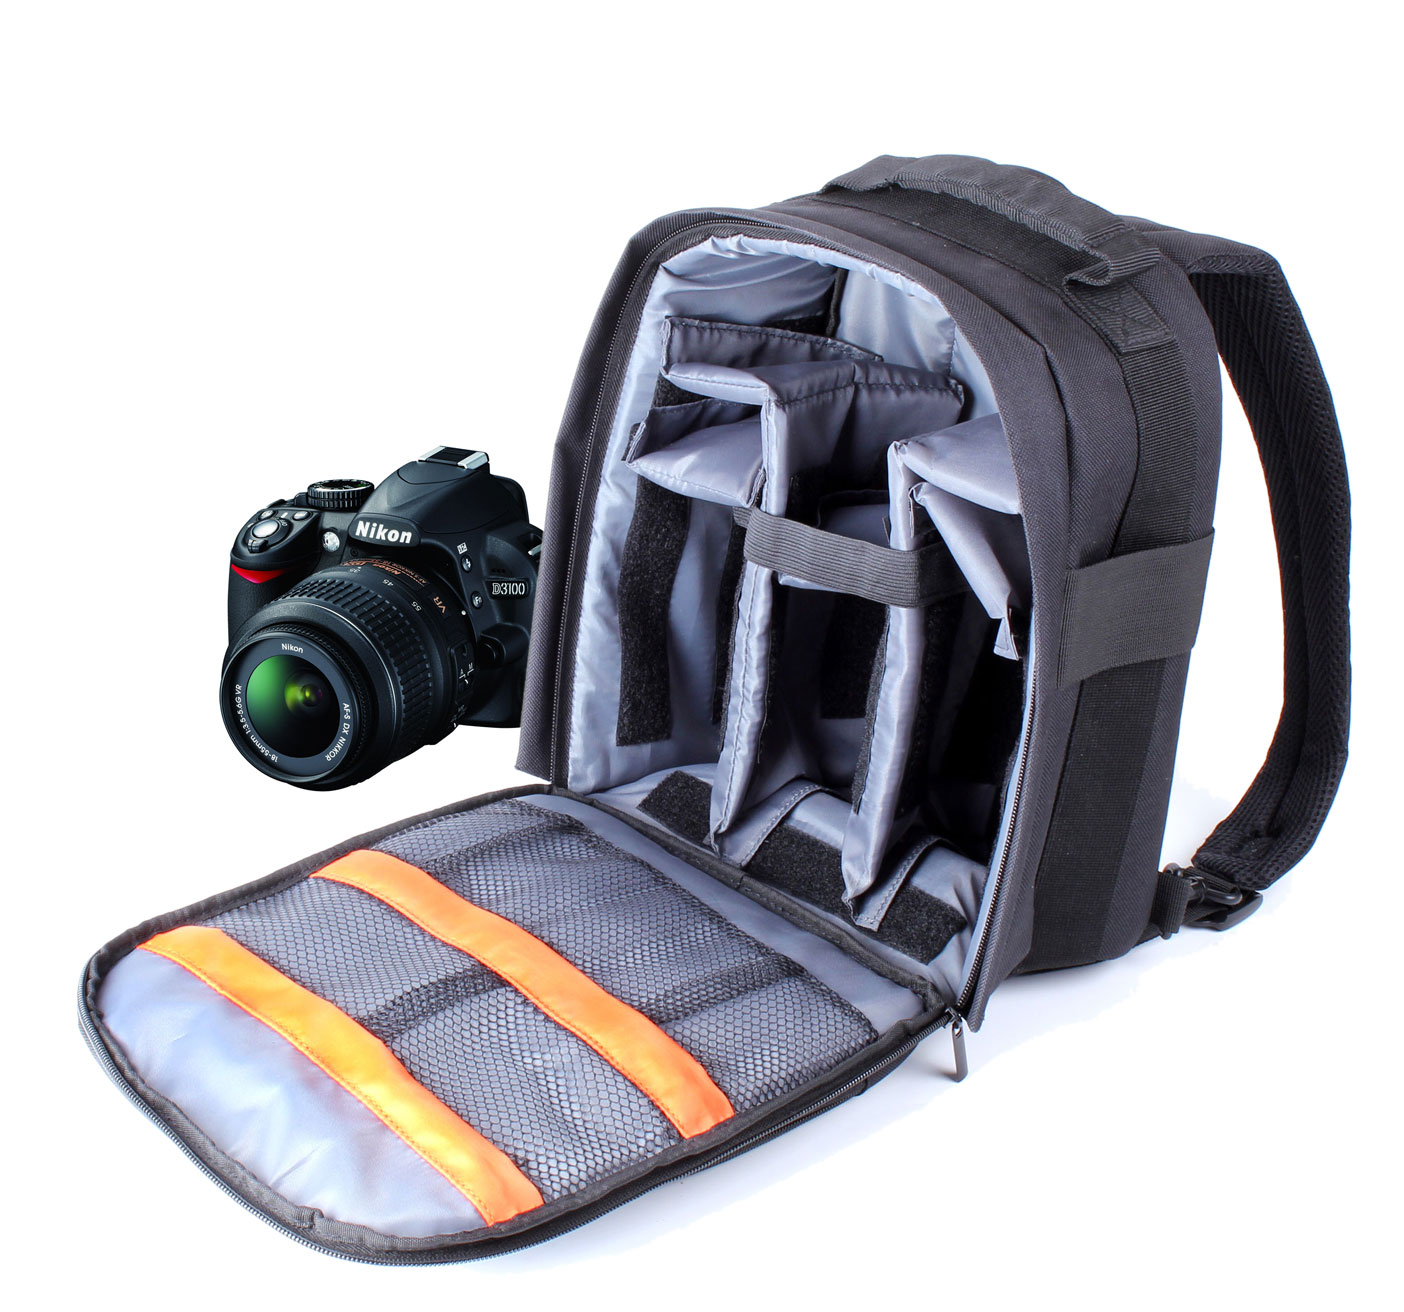 Camera Dslr Camera Bag Backpack black slr dslr camera rucksack backpack bag fits nikon d5000 thumbnail 1